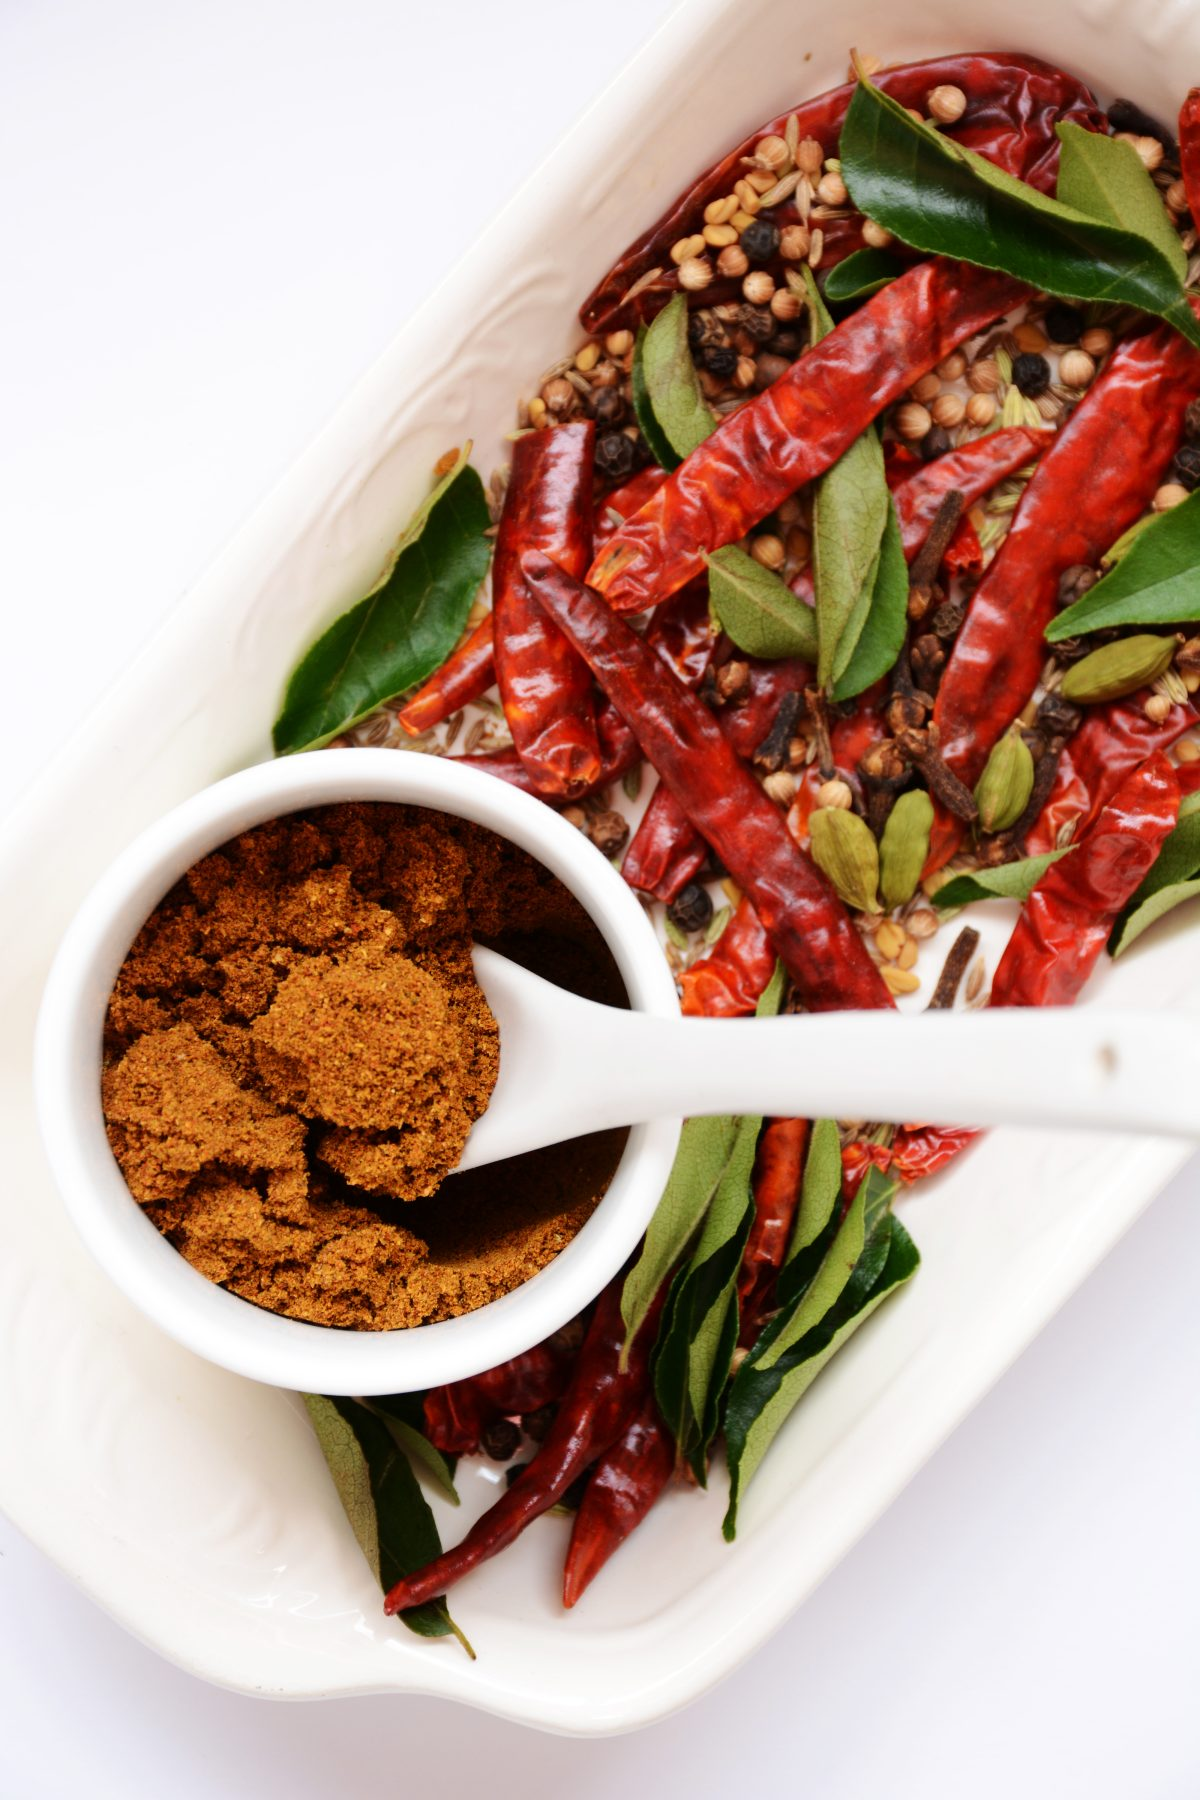 Srilankan roasted curry powder - thespiceadventuress.com